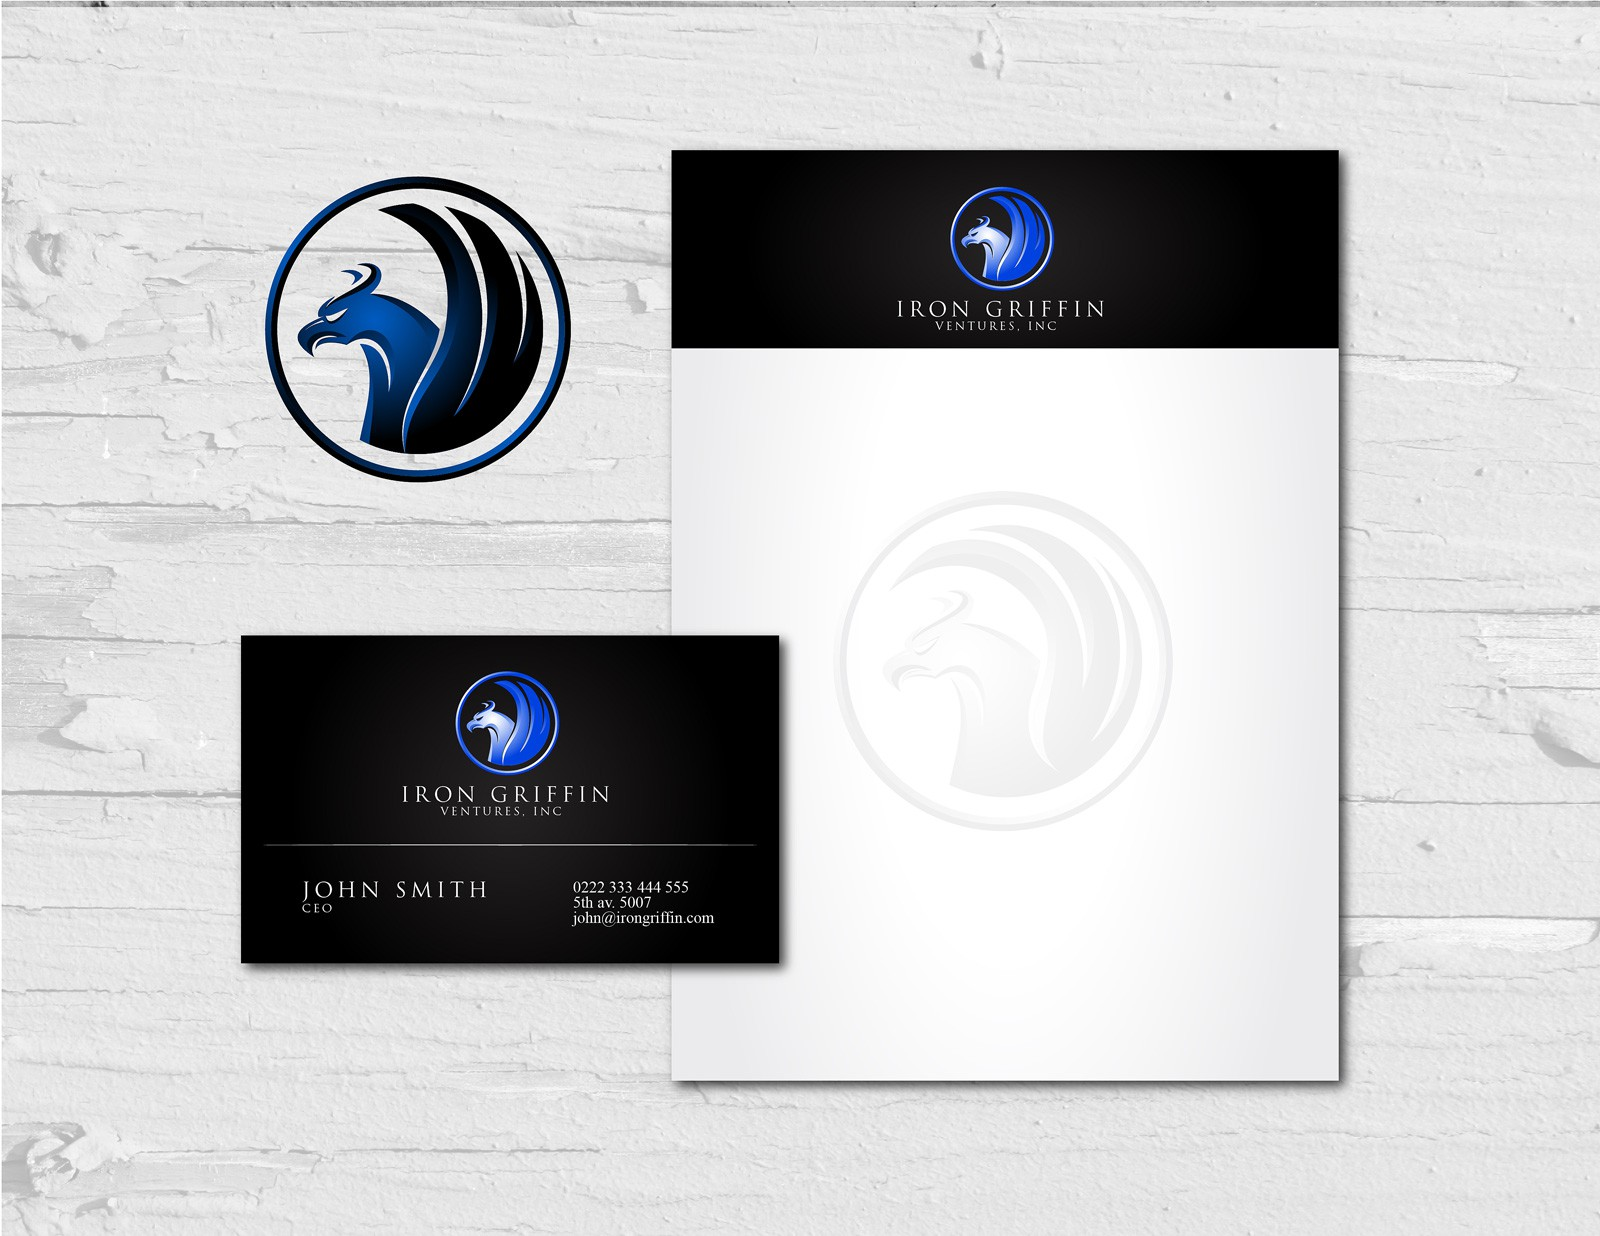 Help IRON GRIFFIN VENTURES, INC. with a new logo and business card